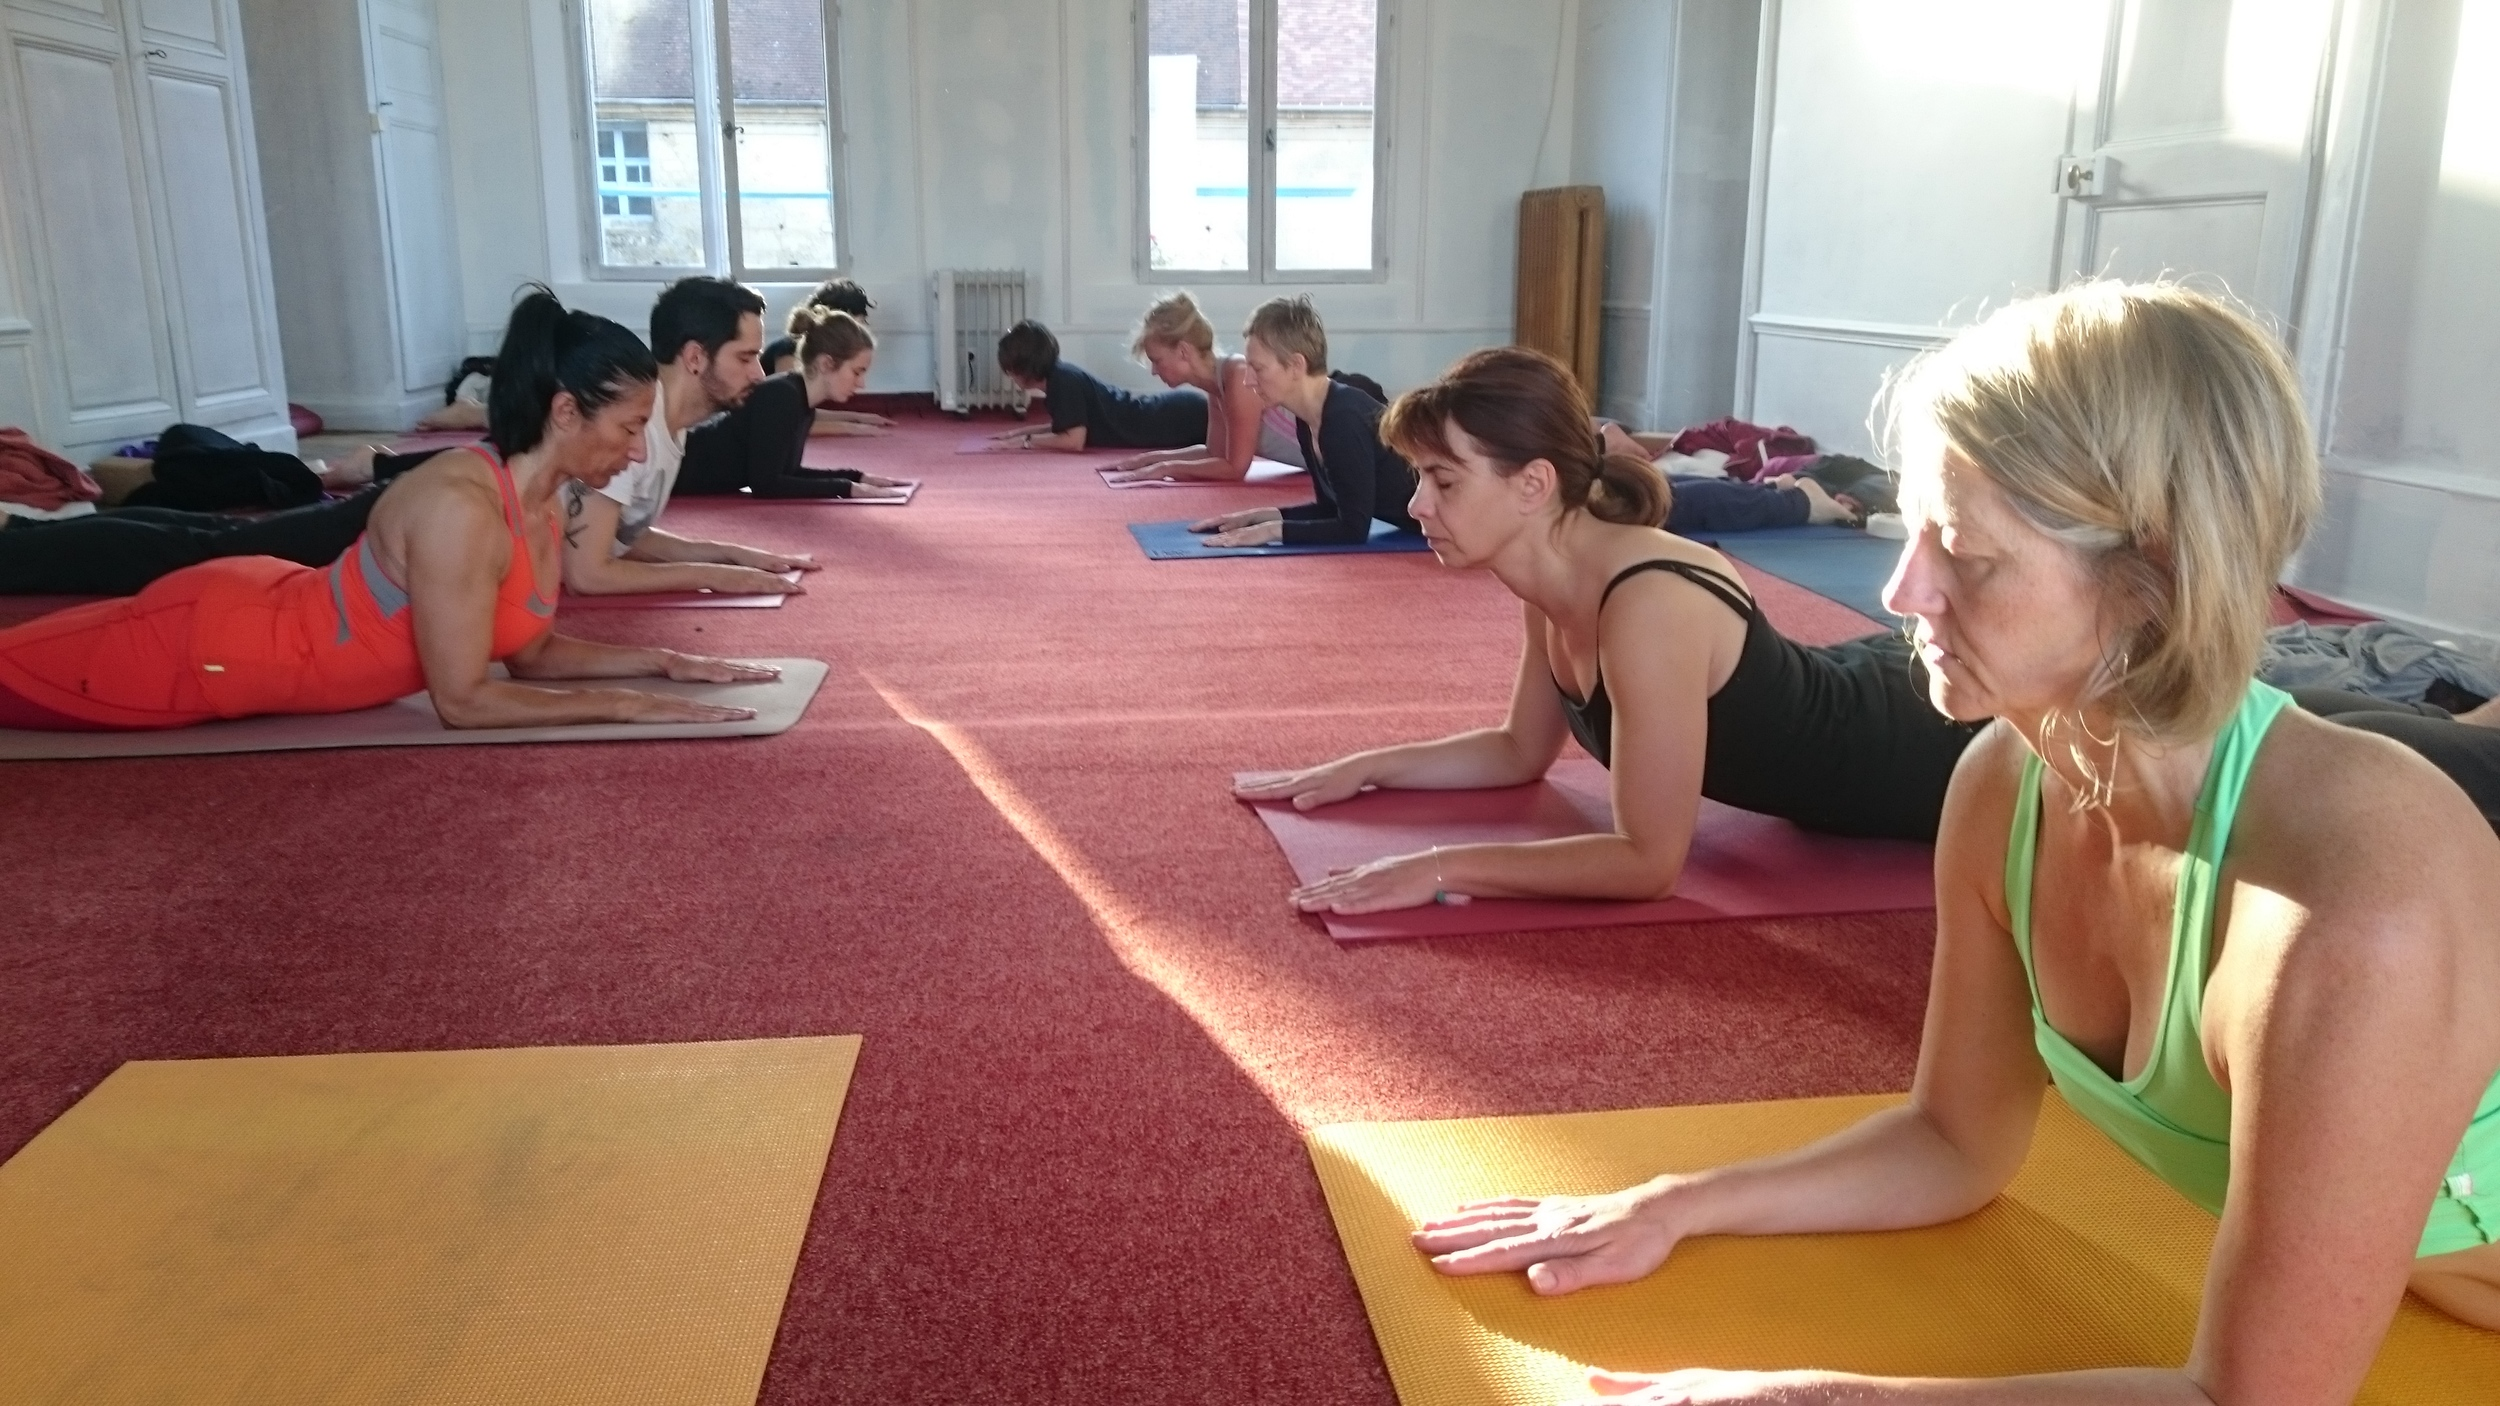 yoga-stage-ete-paris-avance.jpg